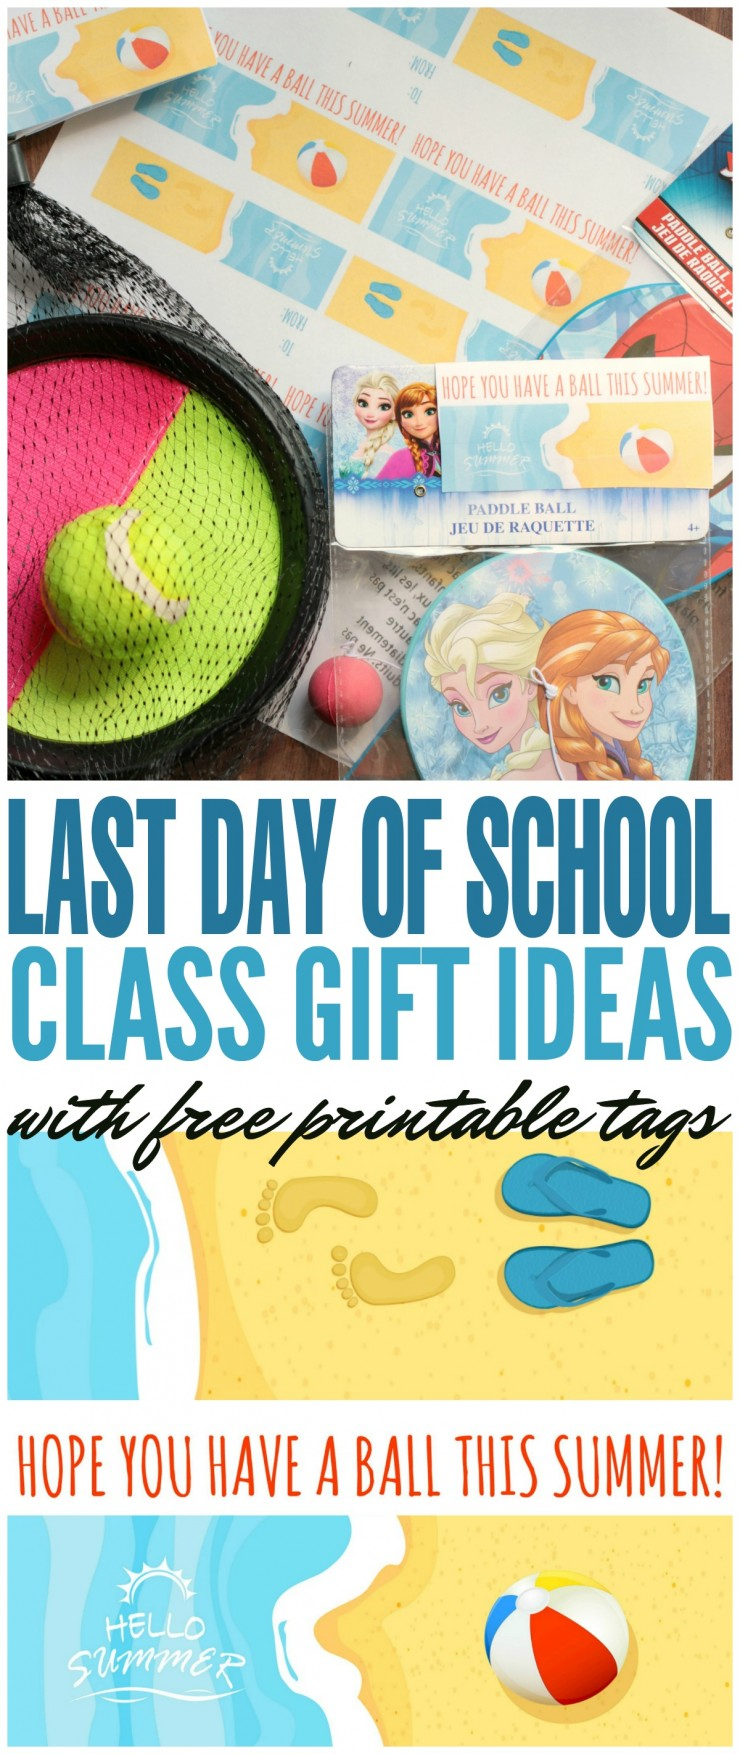 Have your child wish their friends to have a ball this summer with these fun and free printable Last Day of School Class Gift tags plus gift ideas!